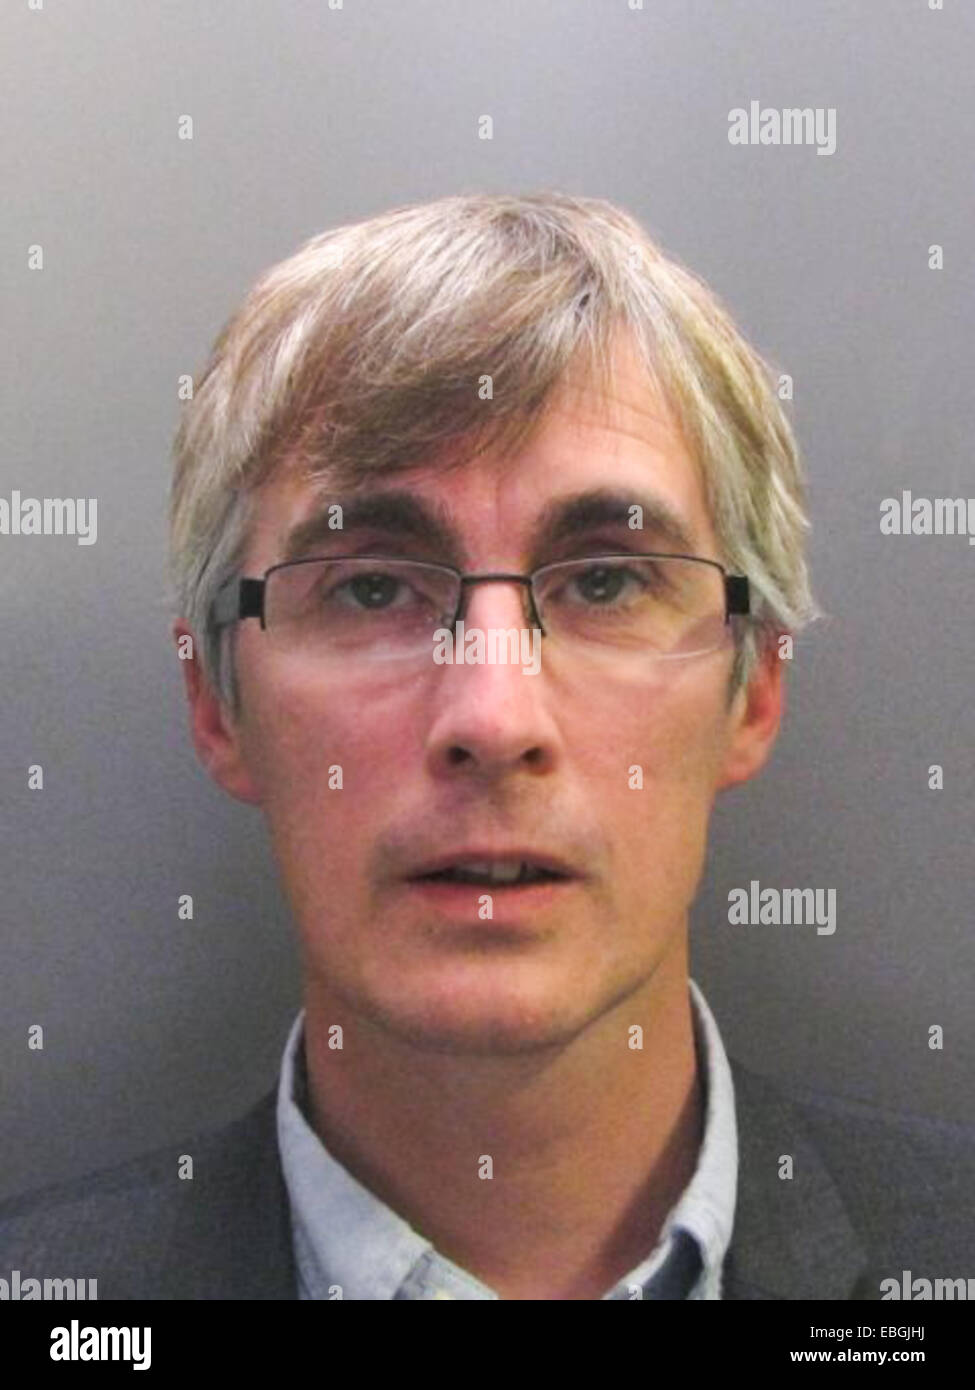 POLICE HANDOUT: Photo issued by Cambridgeshire Police of Dr Myles Bradbury, who has been jailed for 22 years Credit: - Stock Image